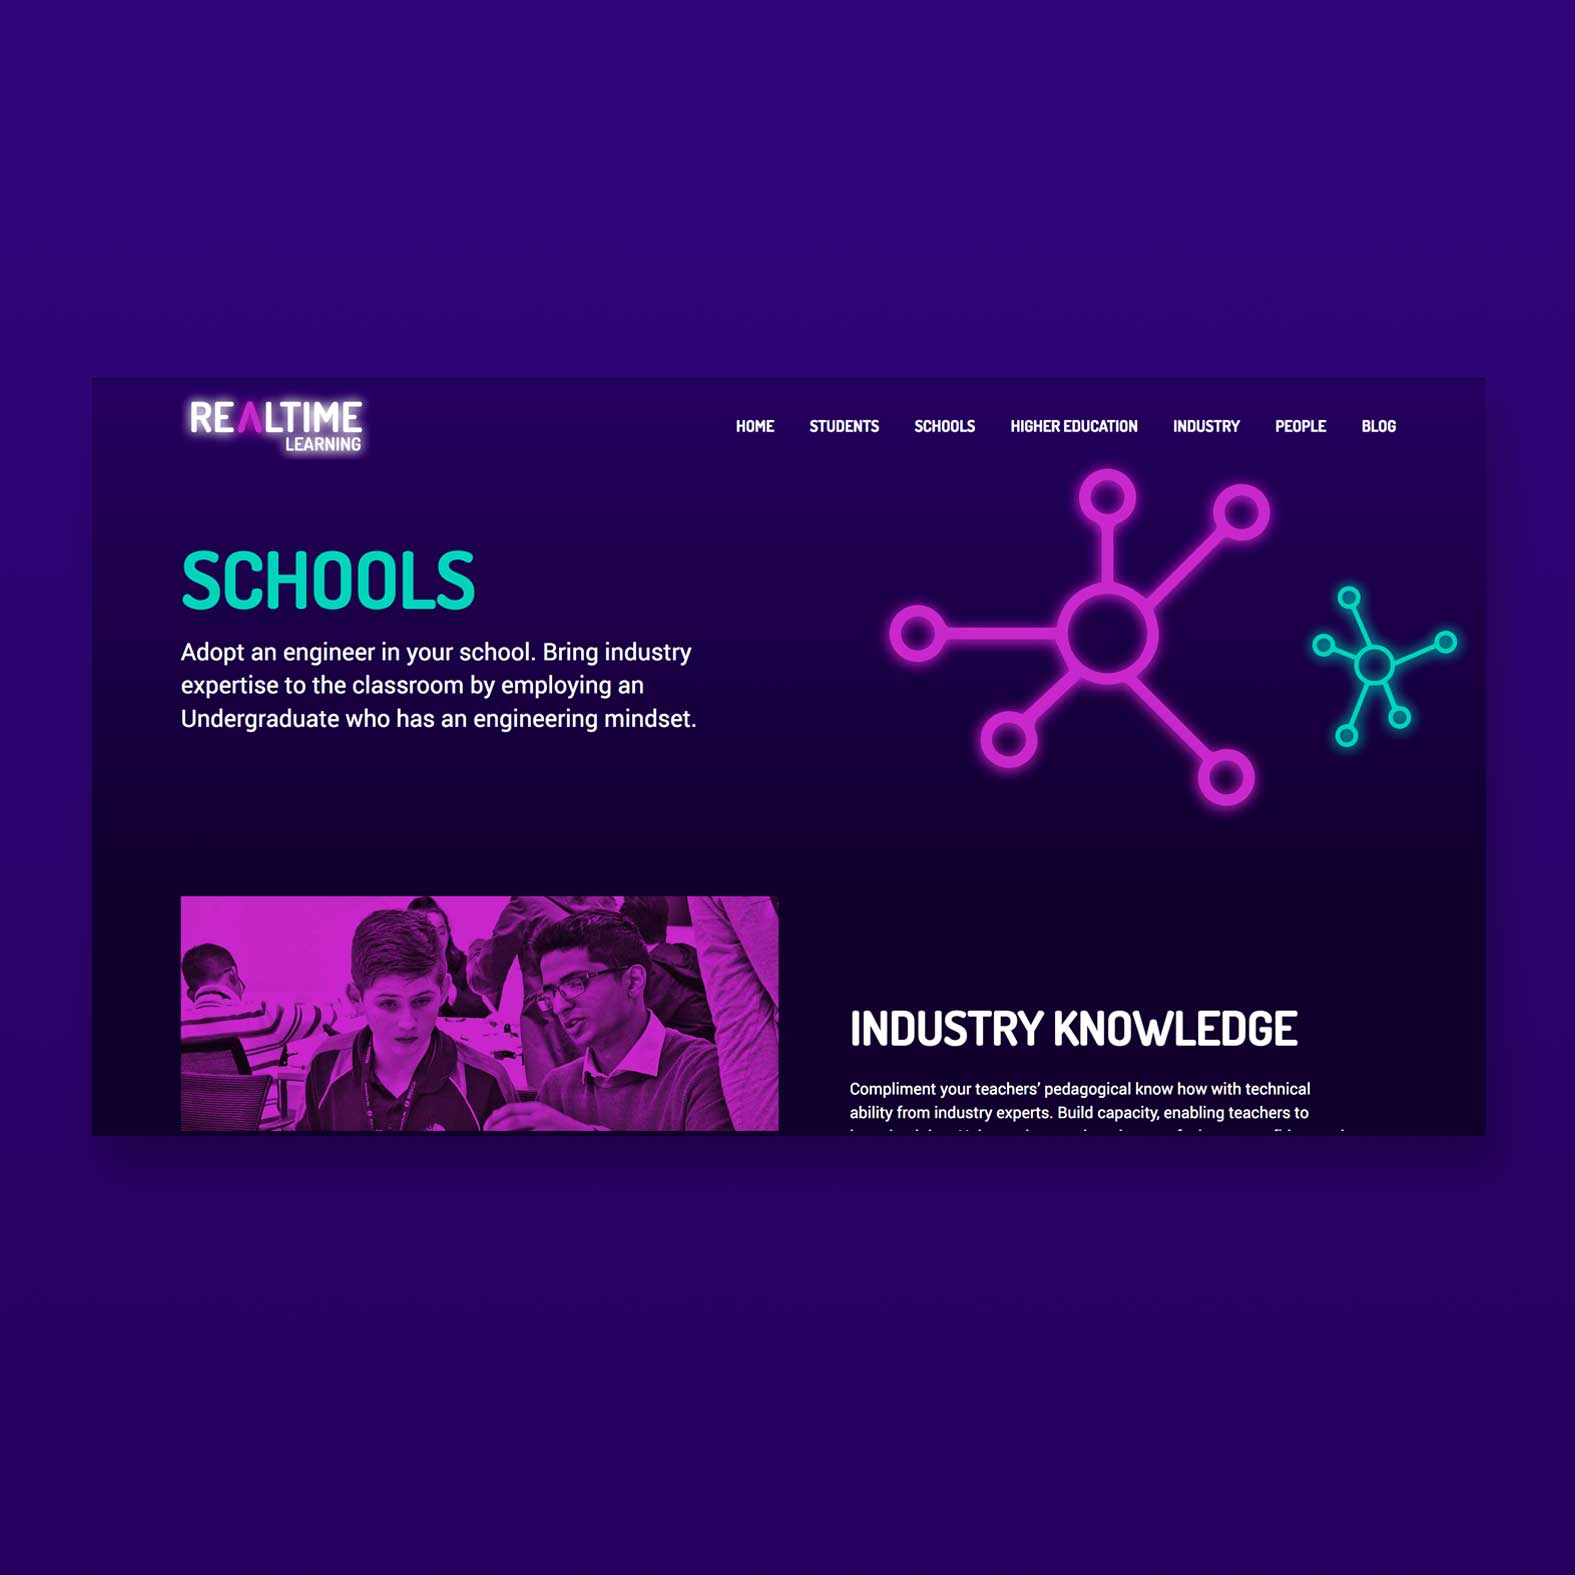 Realtime learning schools page